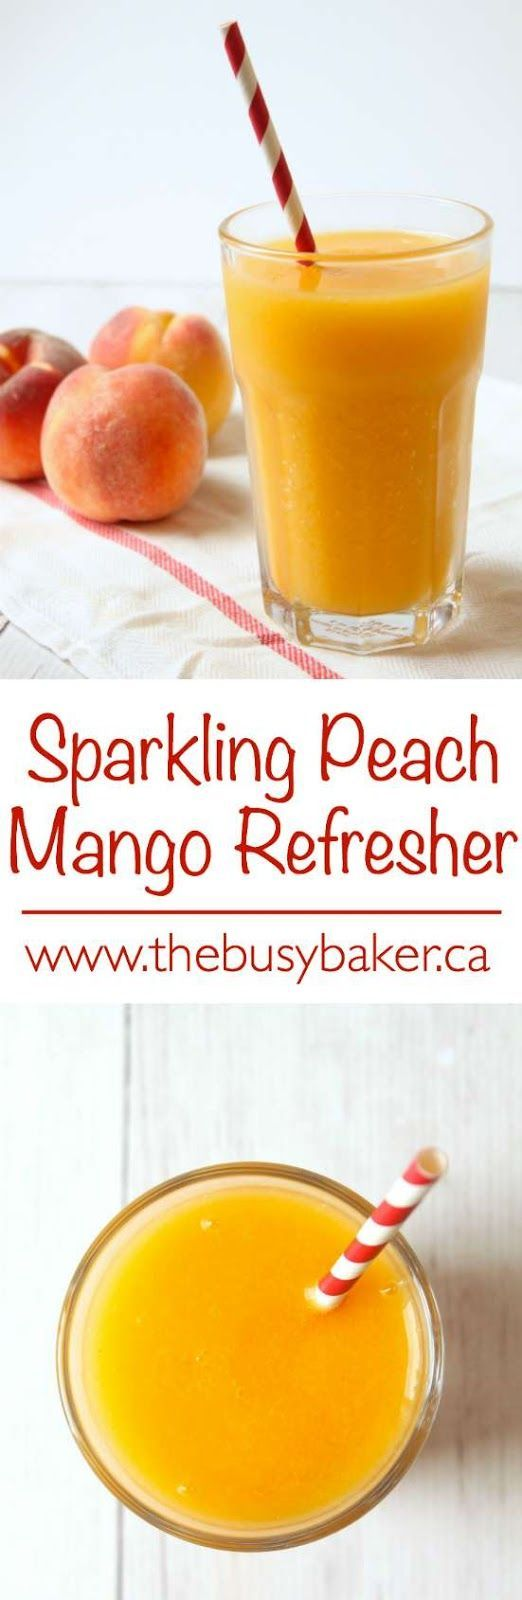 The Busy Baker: Sparkling Peach Mango Refresher